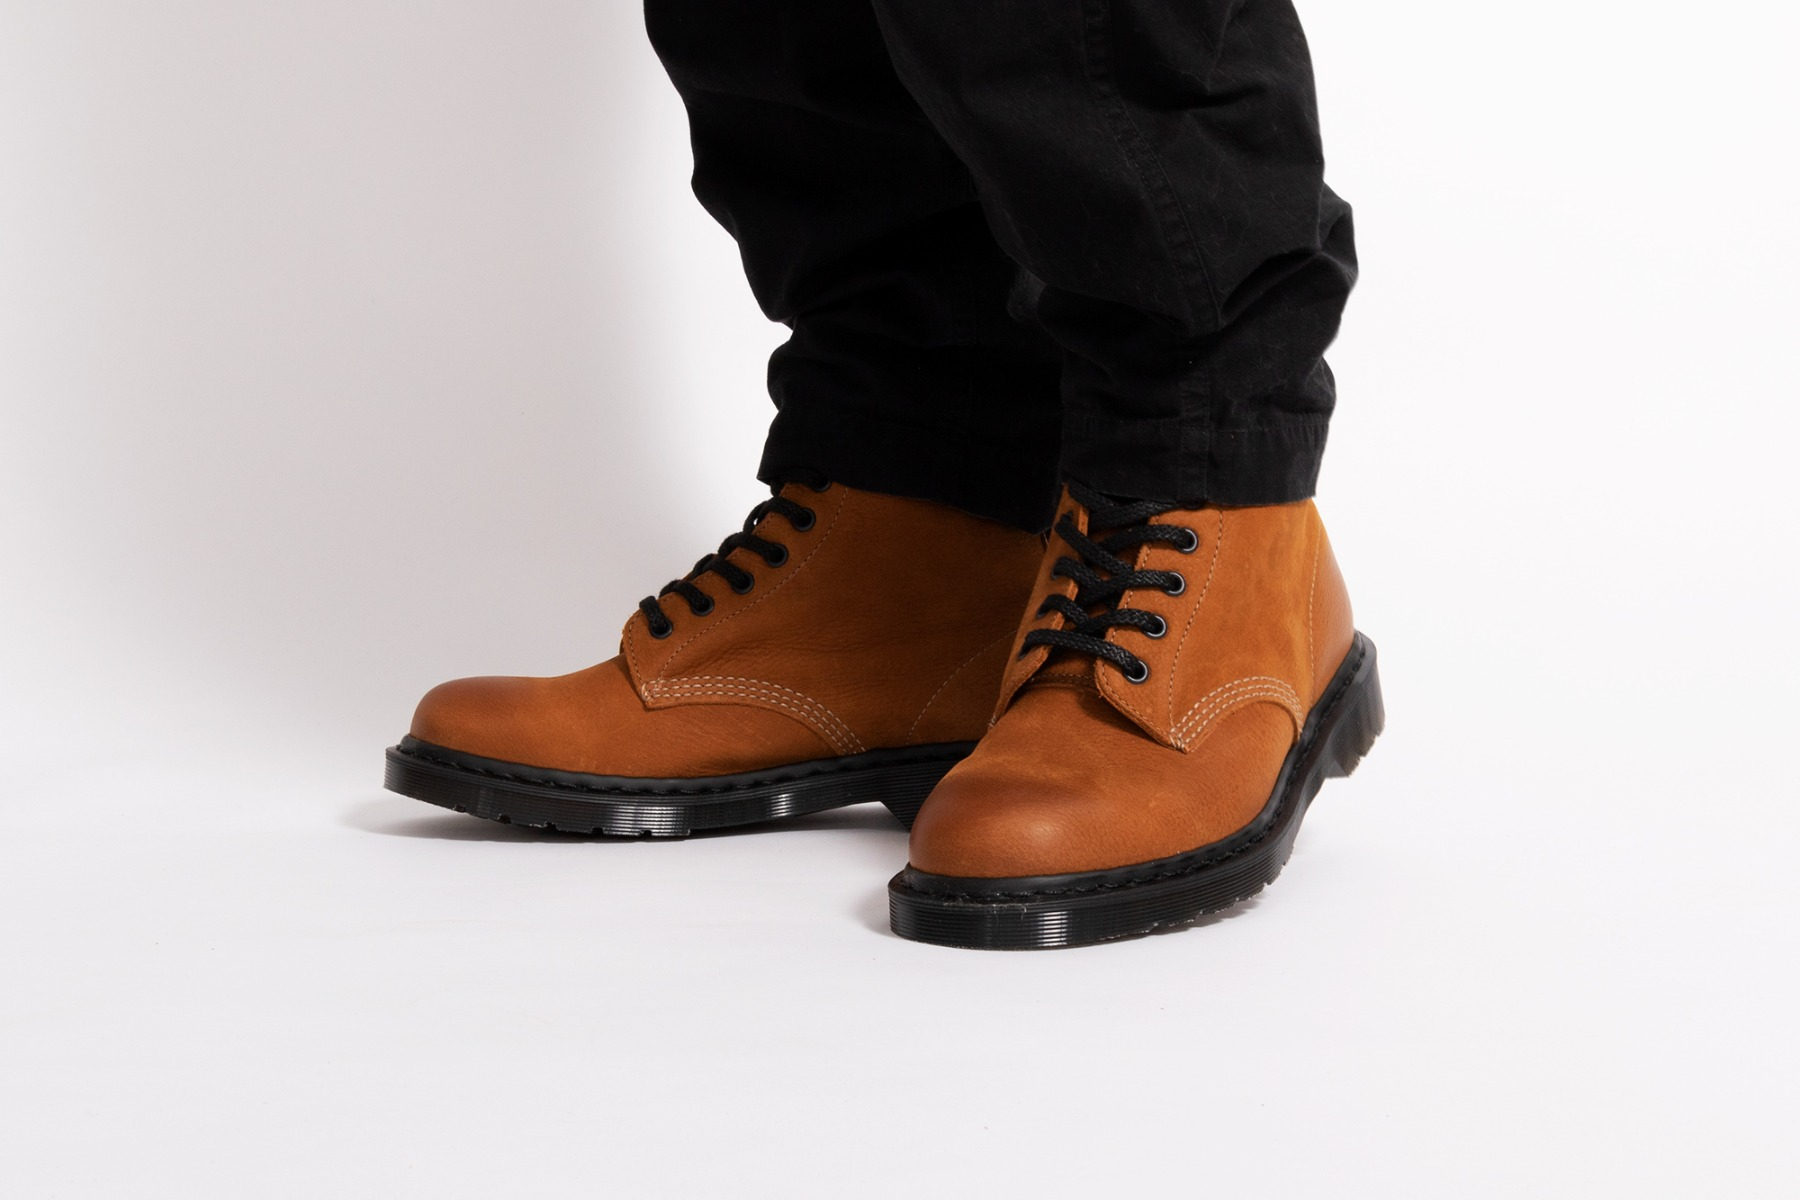 dr martens 1460 made in england boot